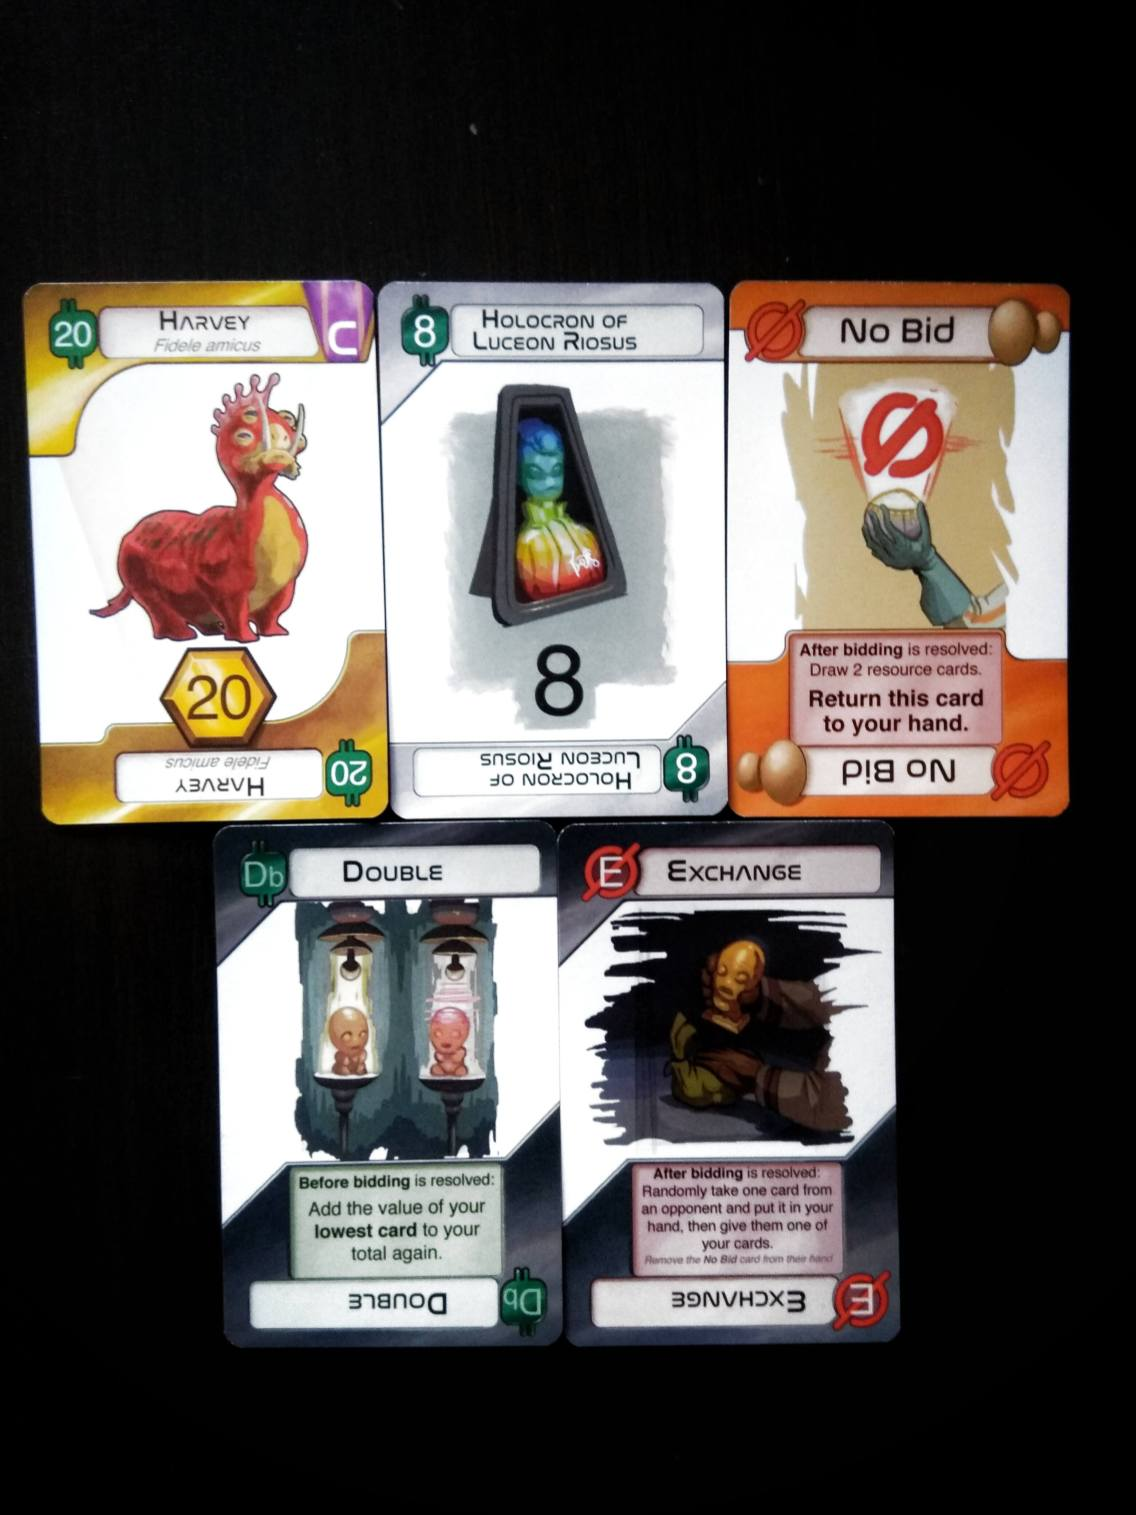 Xenofera, Value Card, No Bid, Actions (Left to Right)